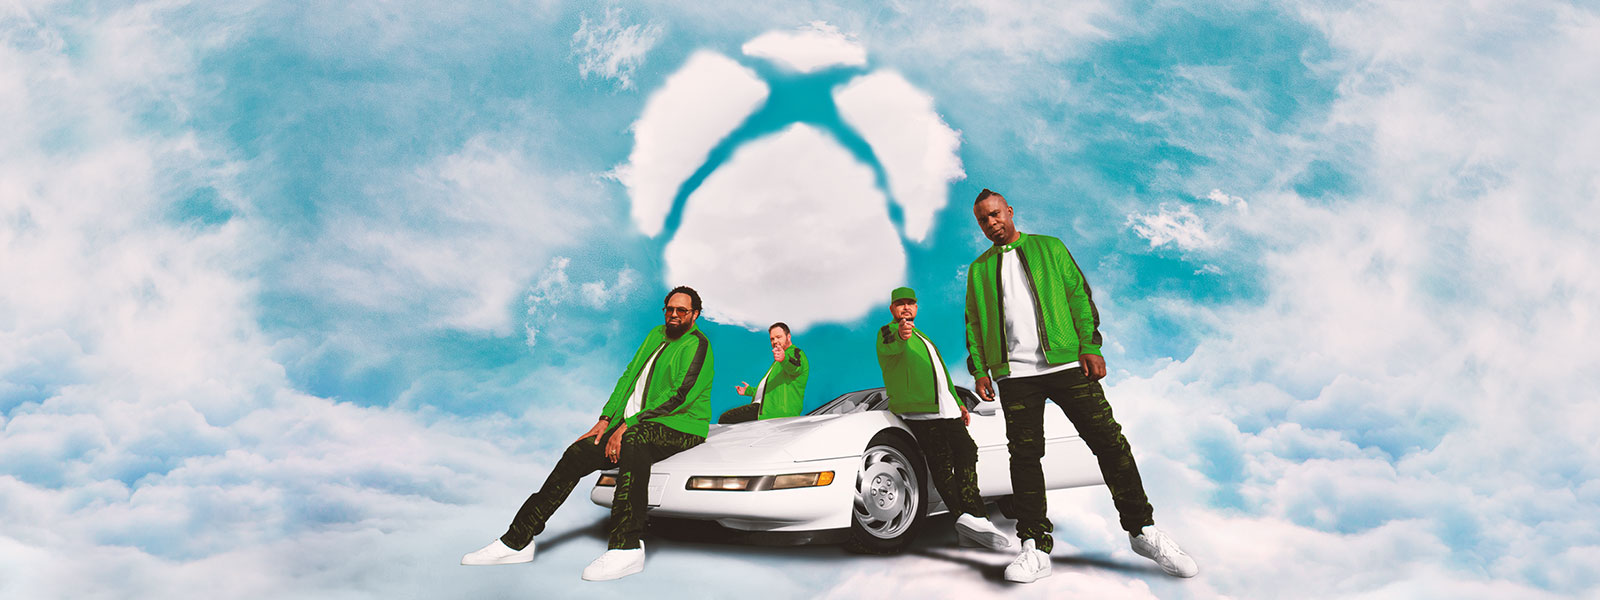 4 R&B singers standing next to a car in the clouds